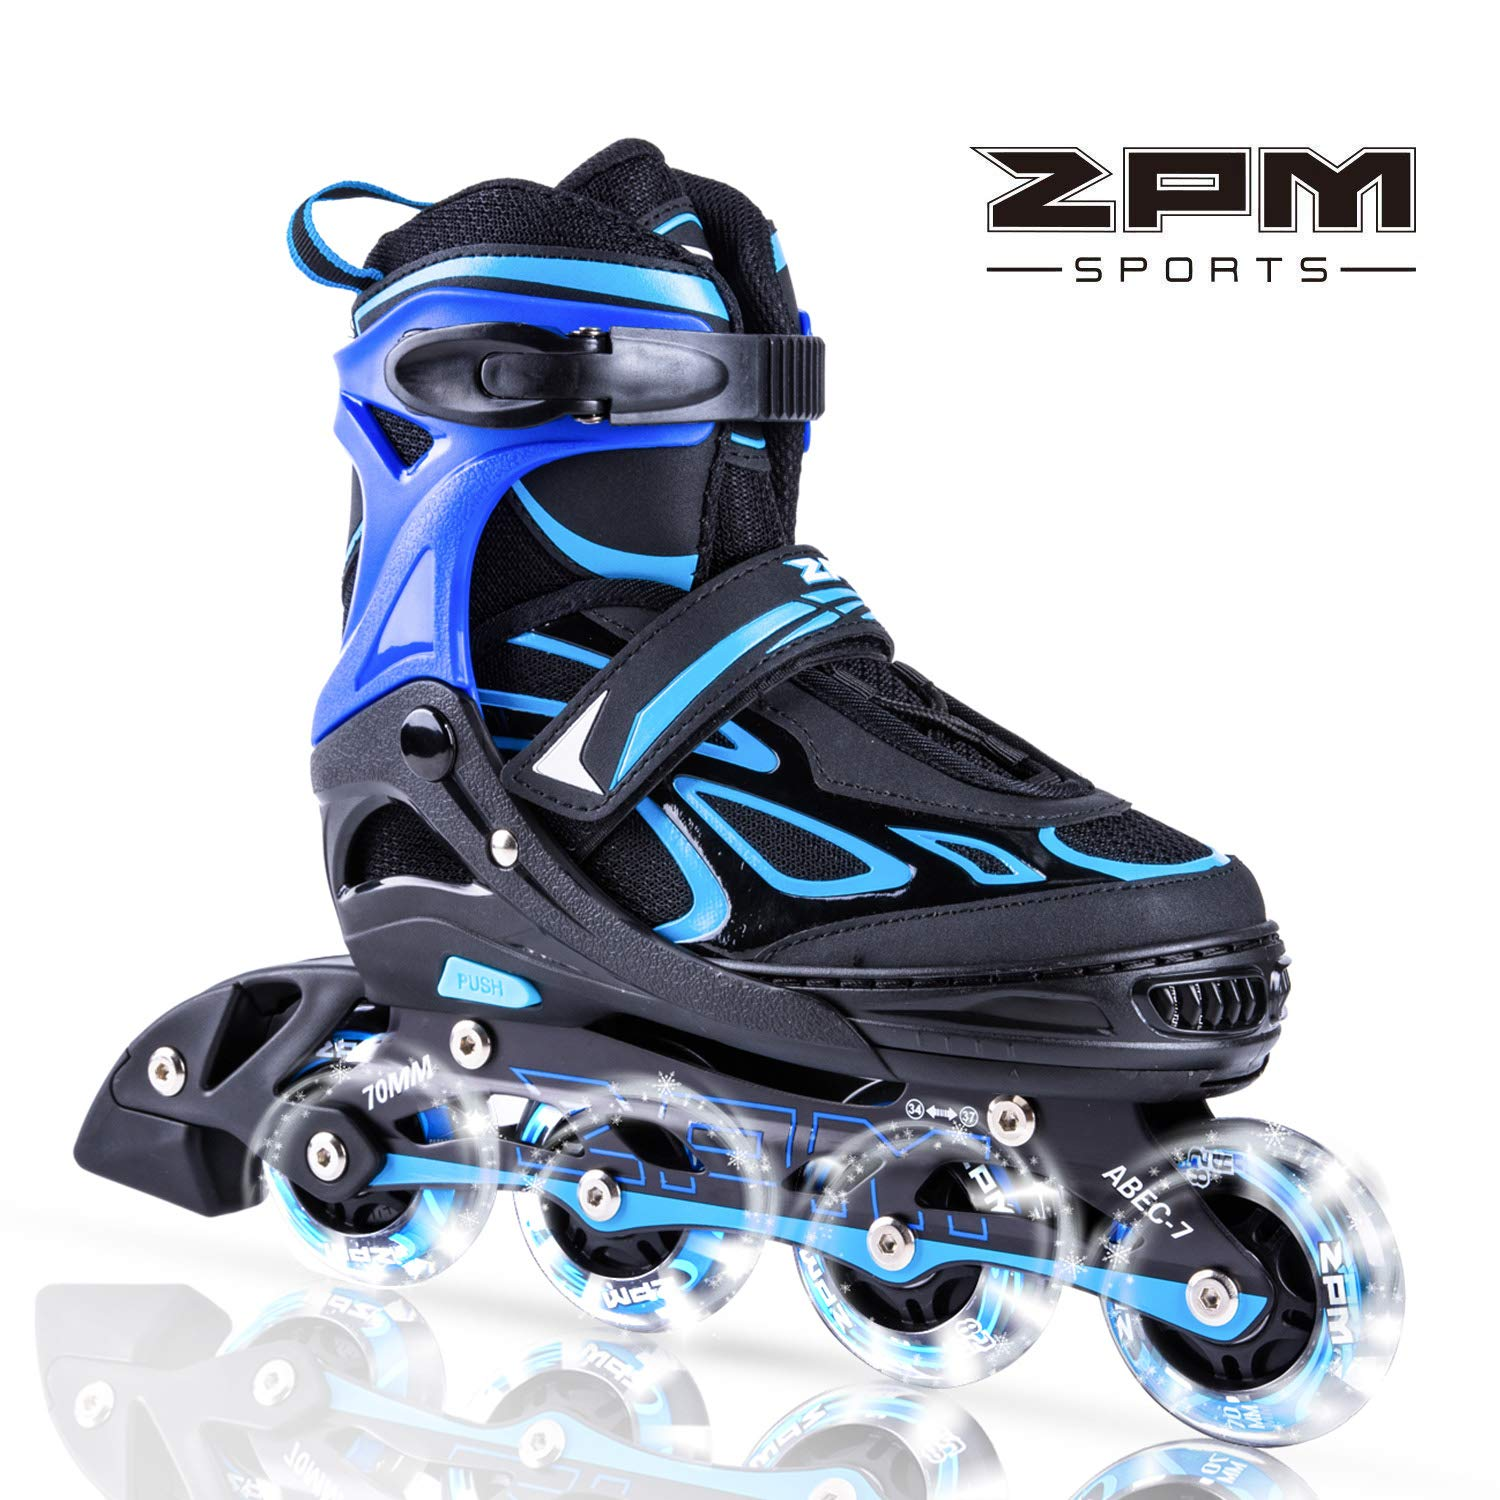 2PM SPORTS Vinal Boys Adjustable Flashing Inline Skates, All Wheels Light Up, Fun Illuminating Skates for Kids and Youths - Azure M